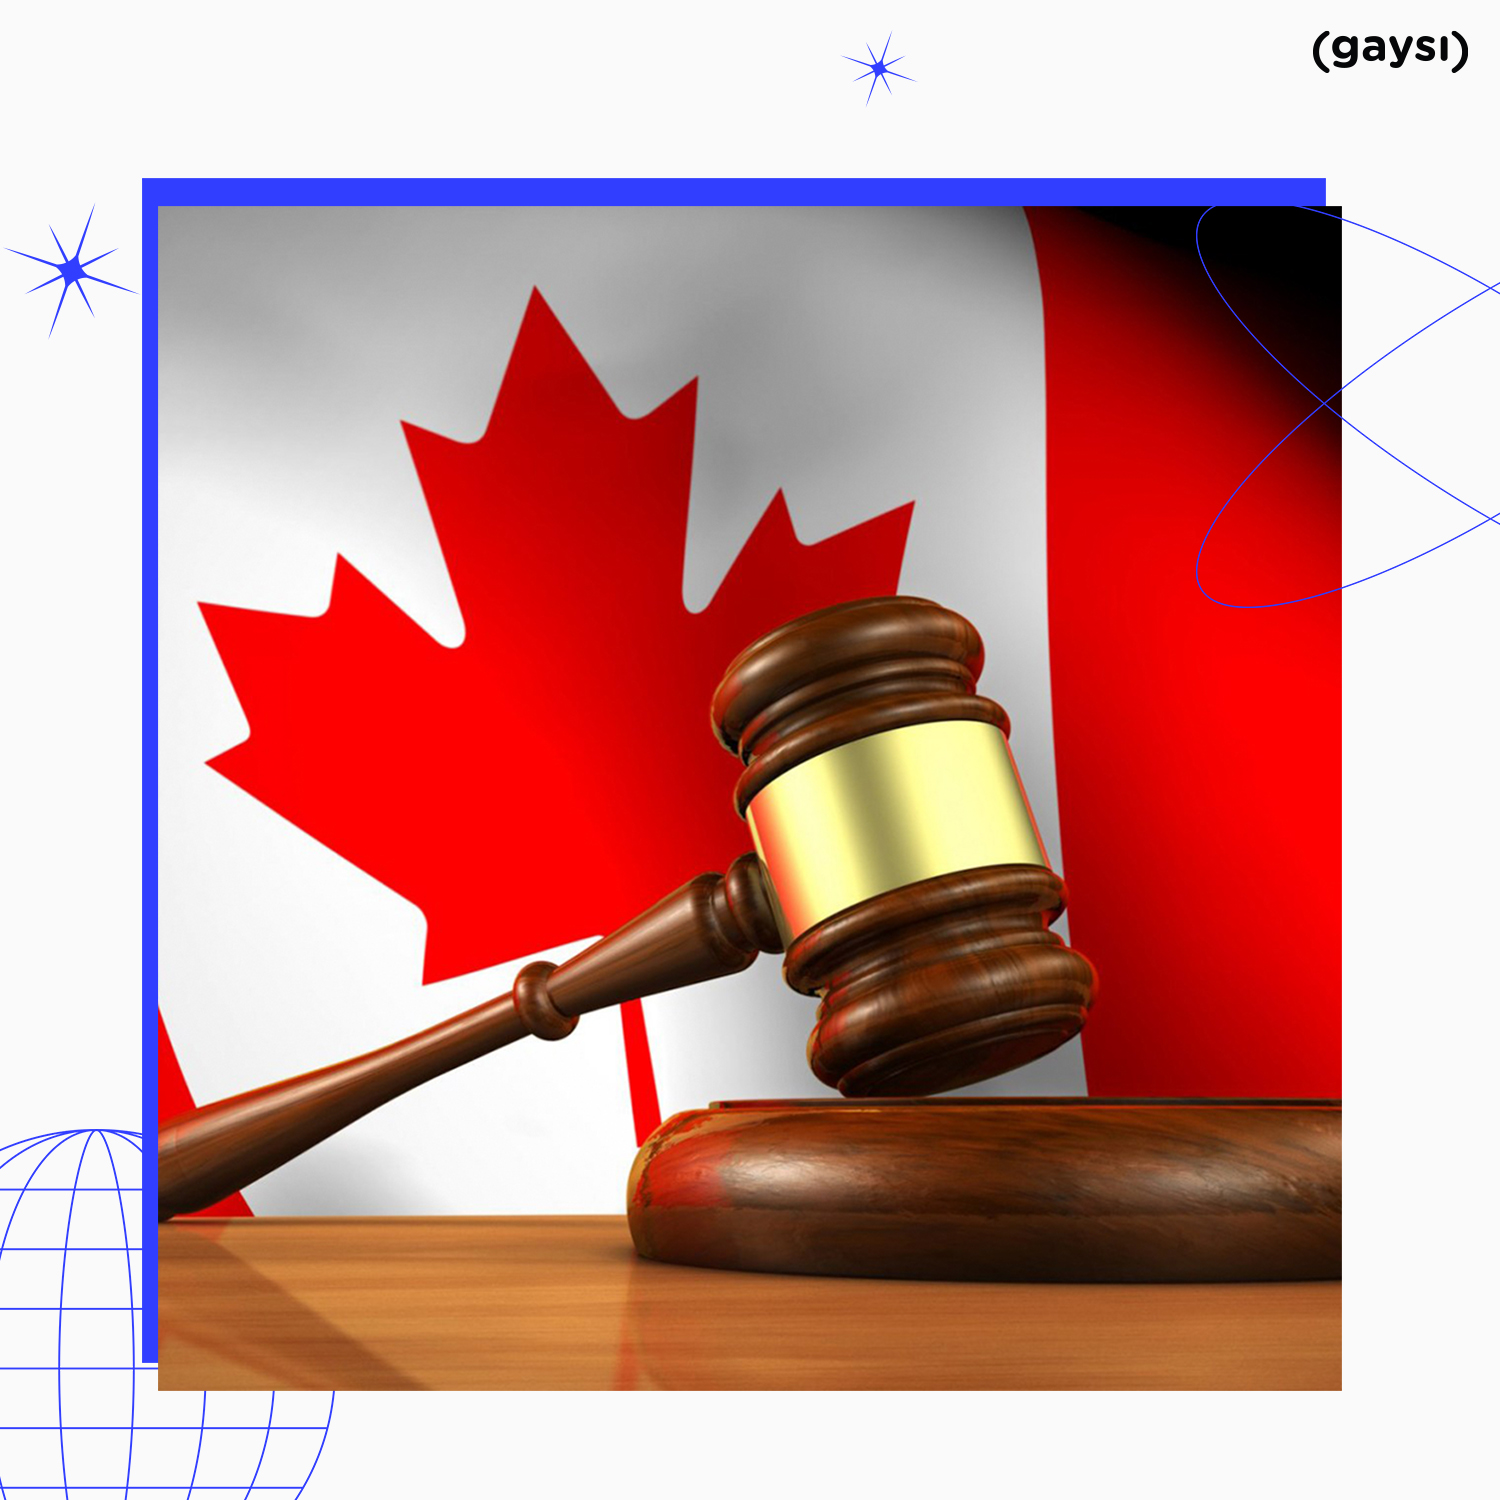 Misgendering In The Workplace Is A Human Rights Violation: Canadian Court